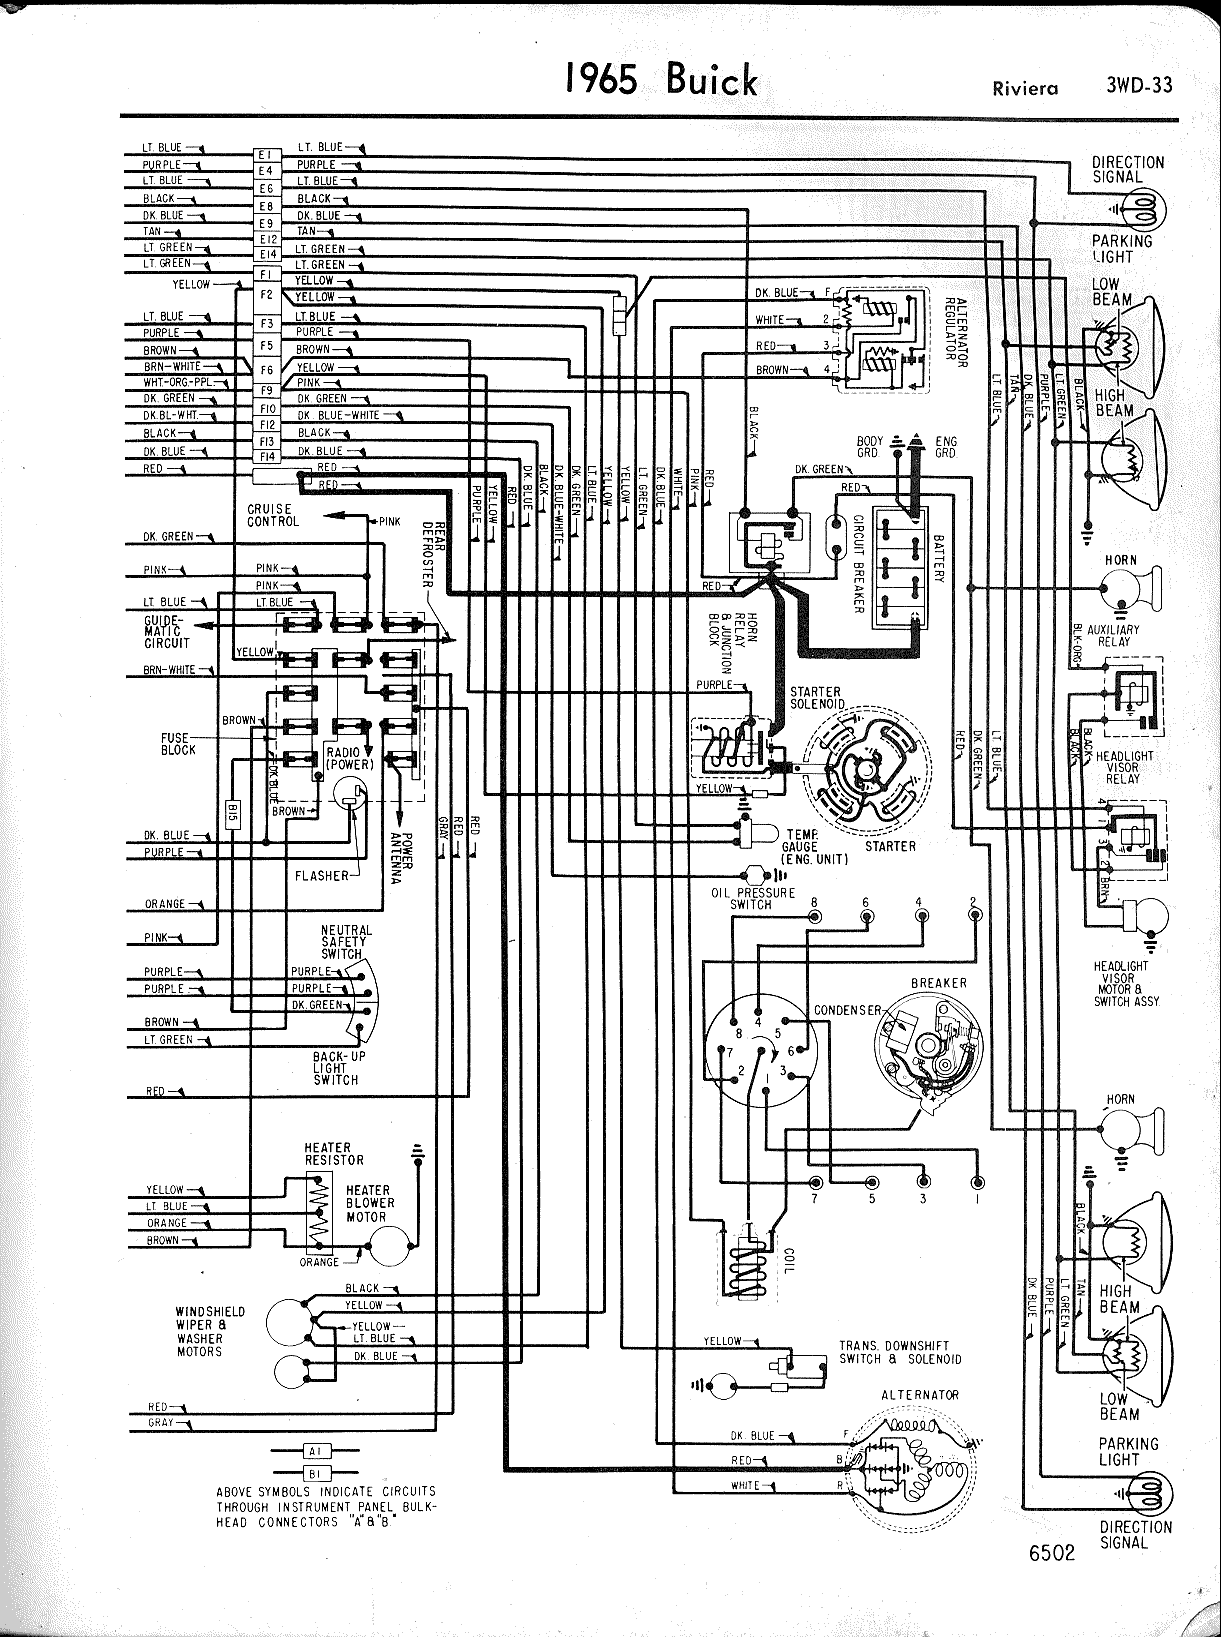 98 buick riviera wiring diagram basic wiring diagram u2022 rh dev spokeapartments com  1996 buick riviera radio wiring diagram